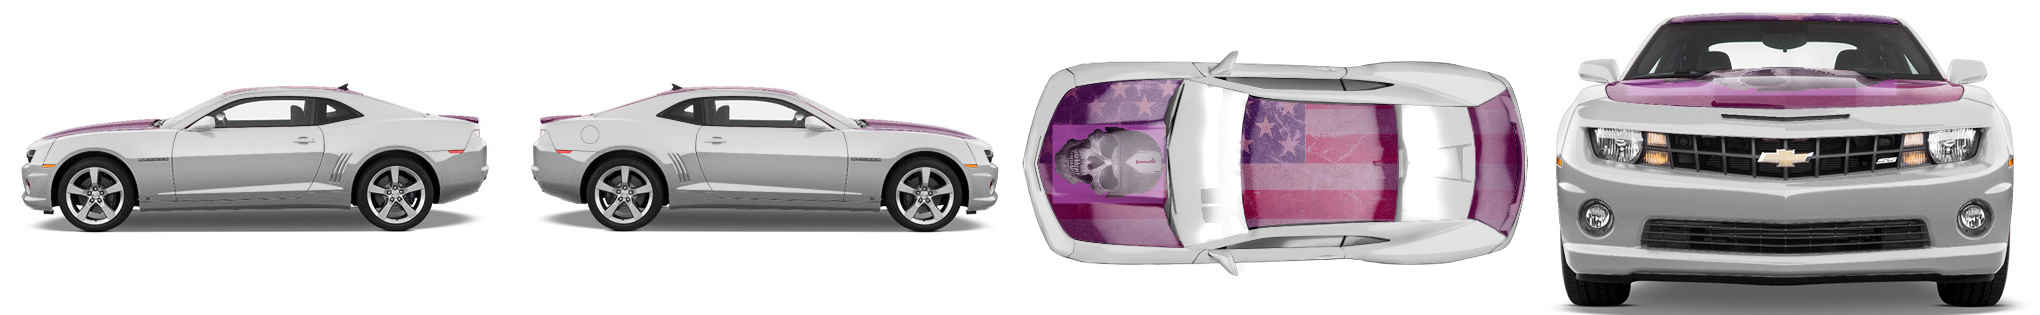 Muscle Car Wrap #50127